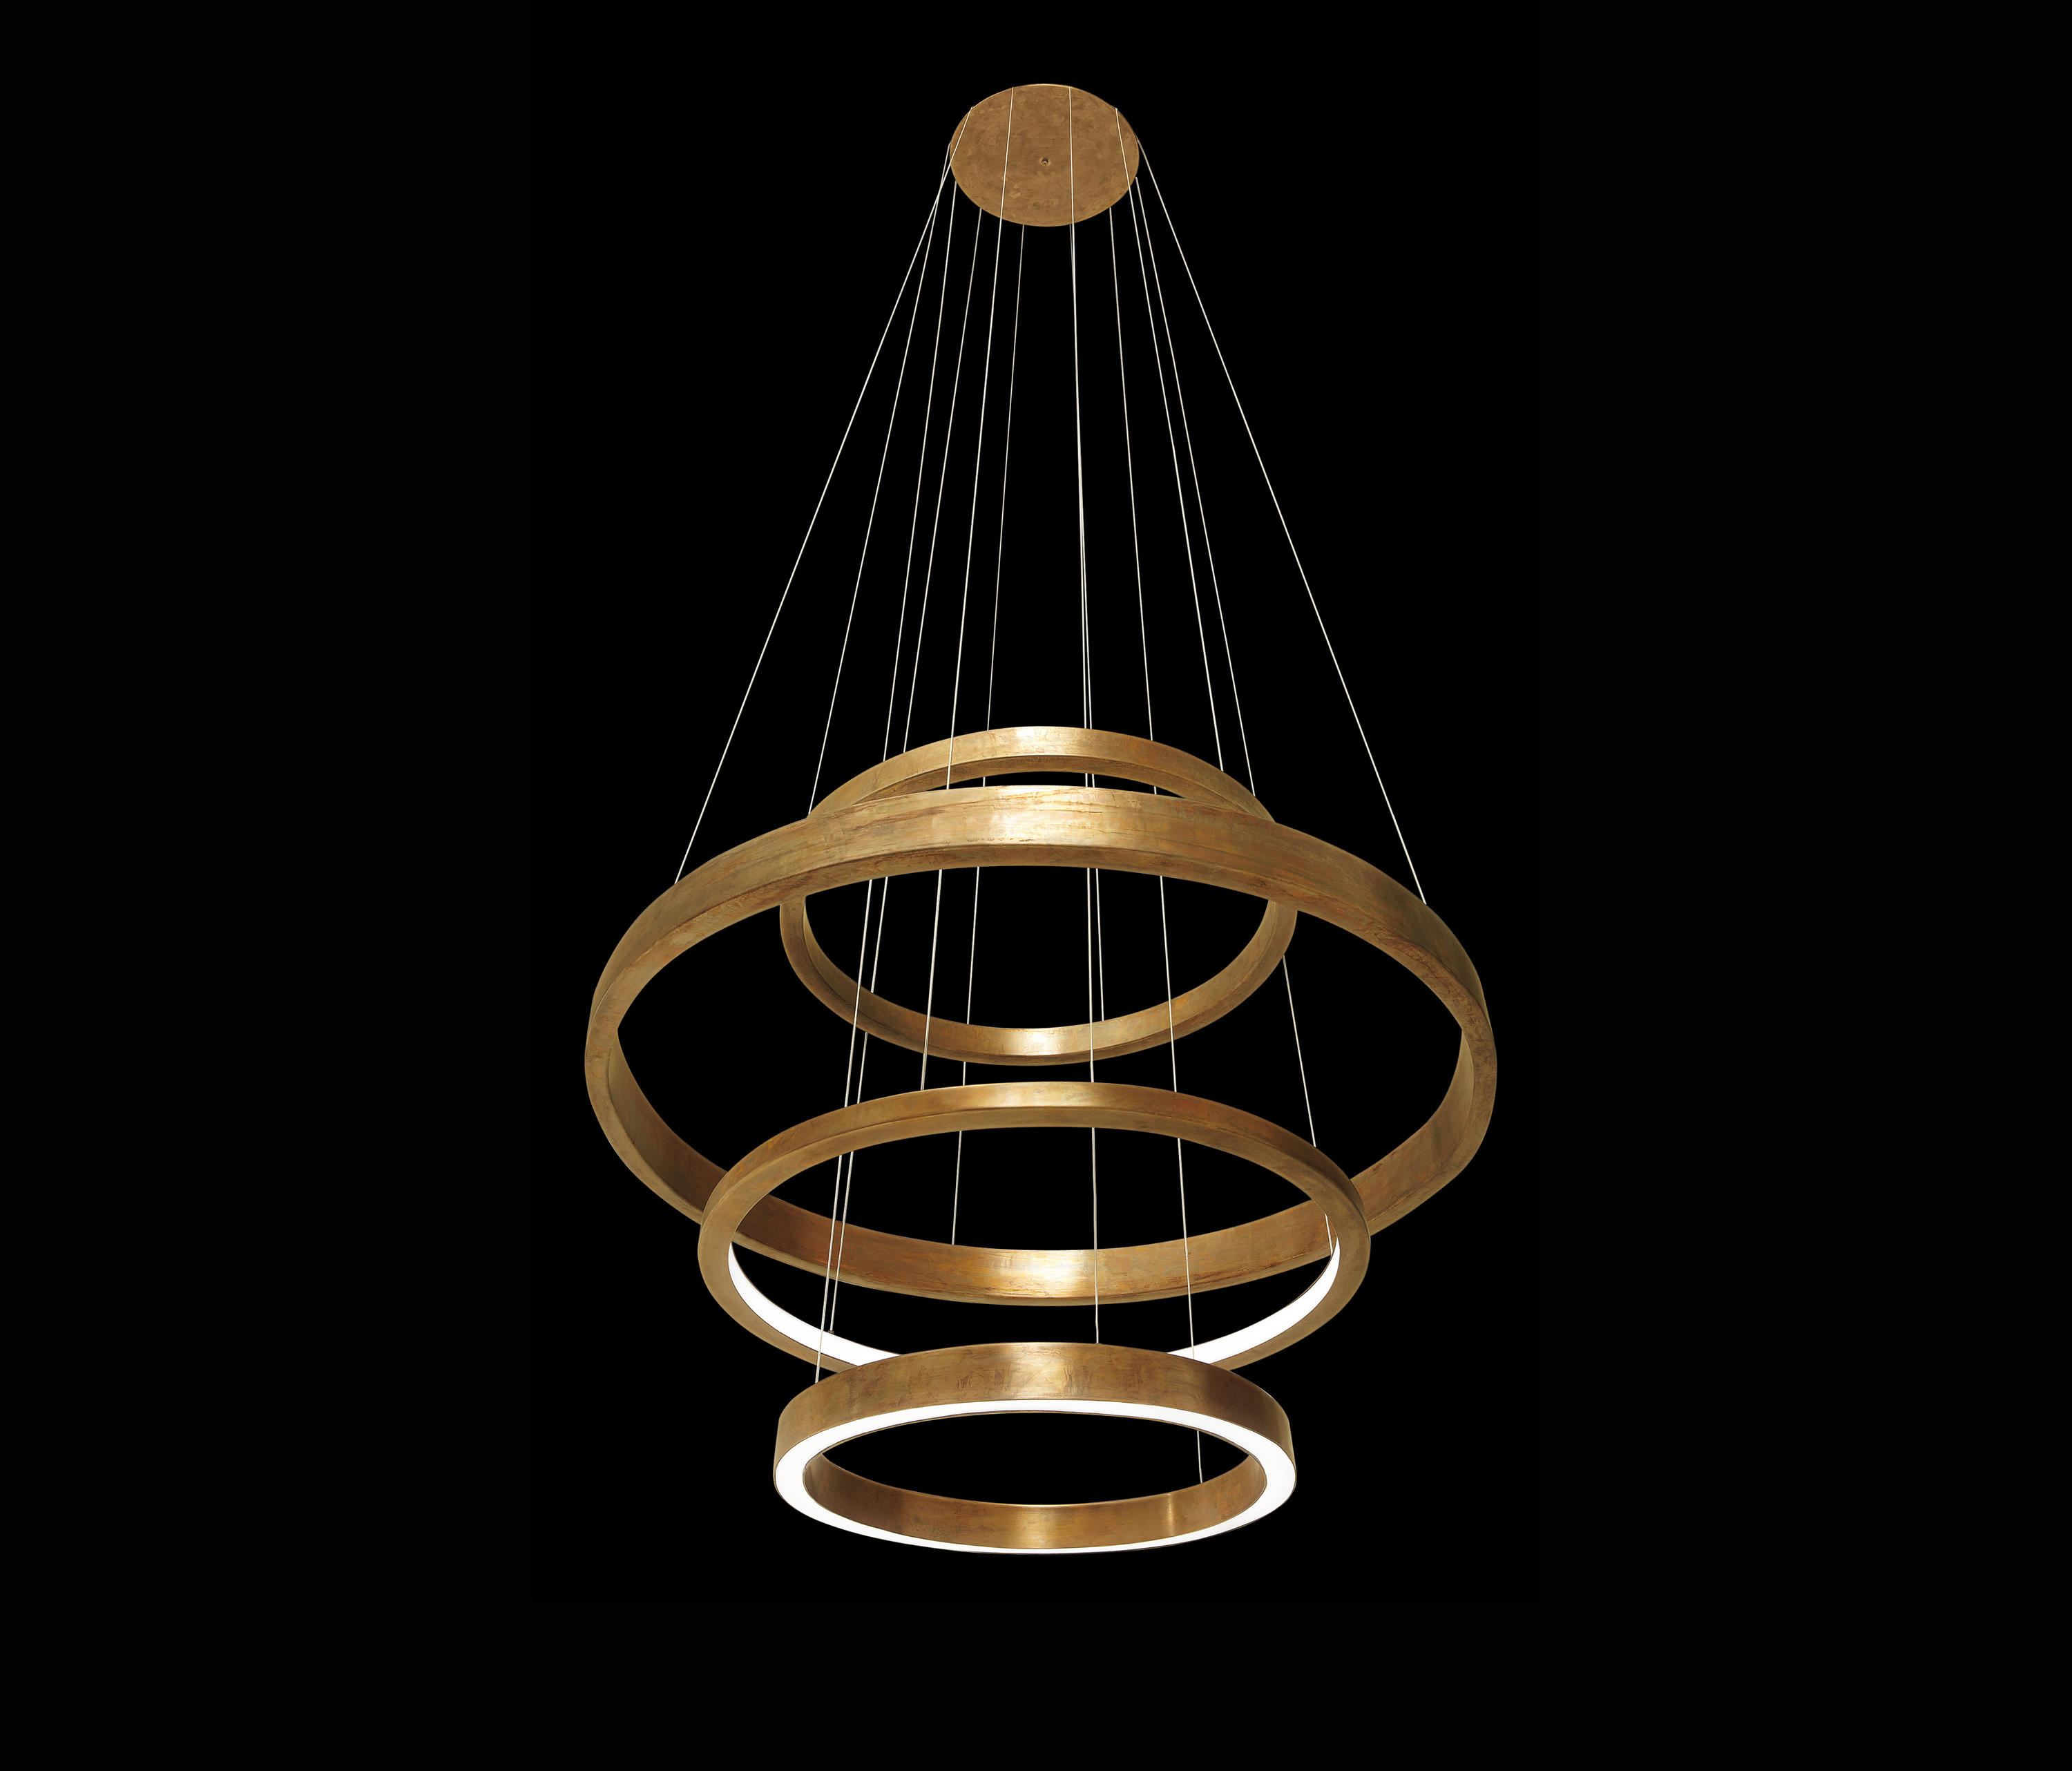 Light Ring Medium General Lighting From Henge Architonic